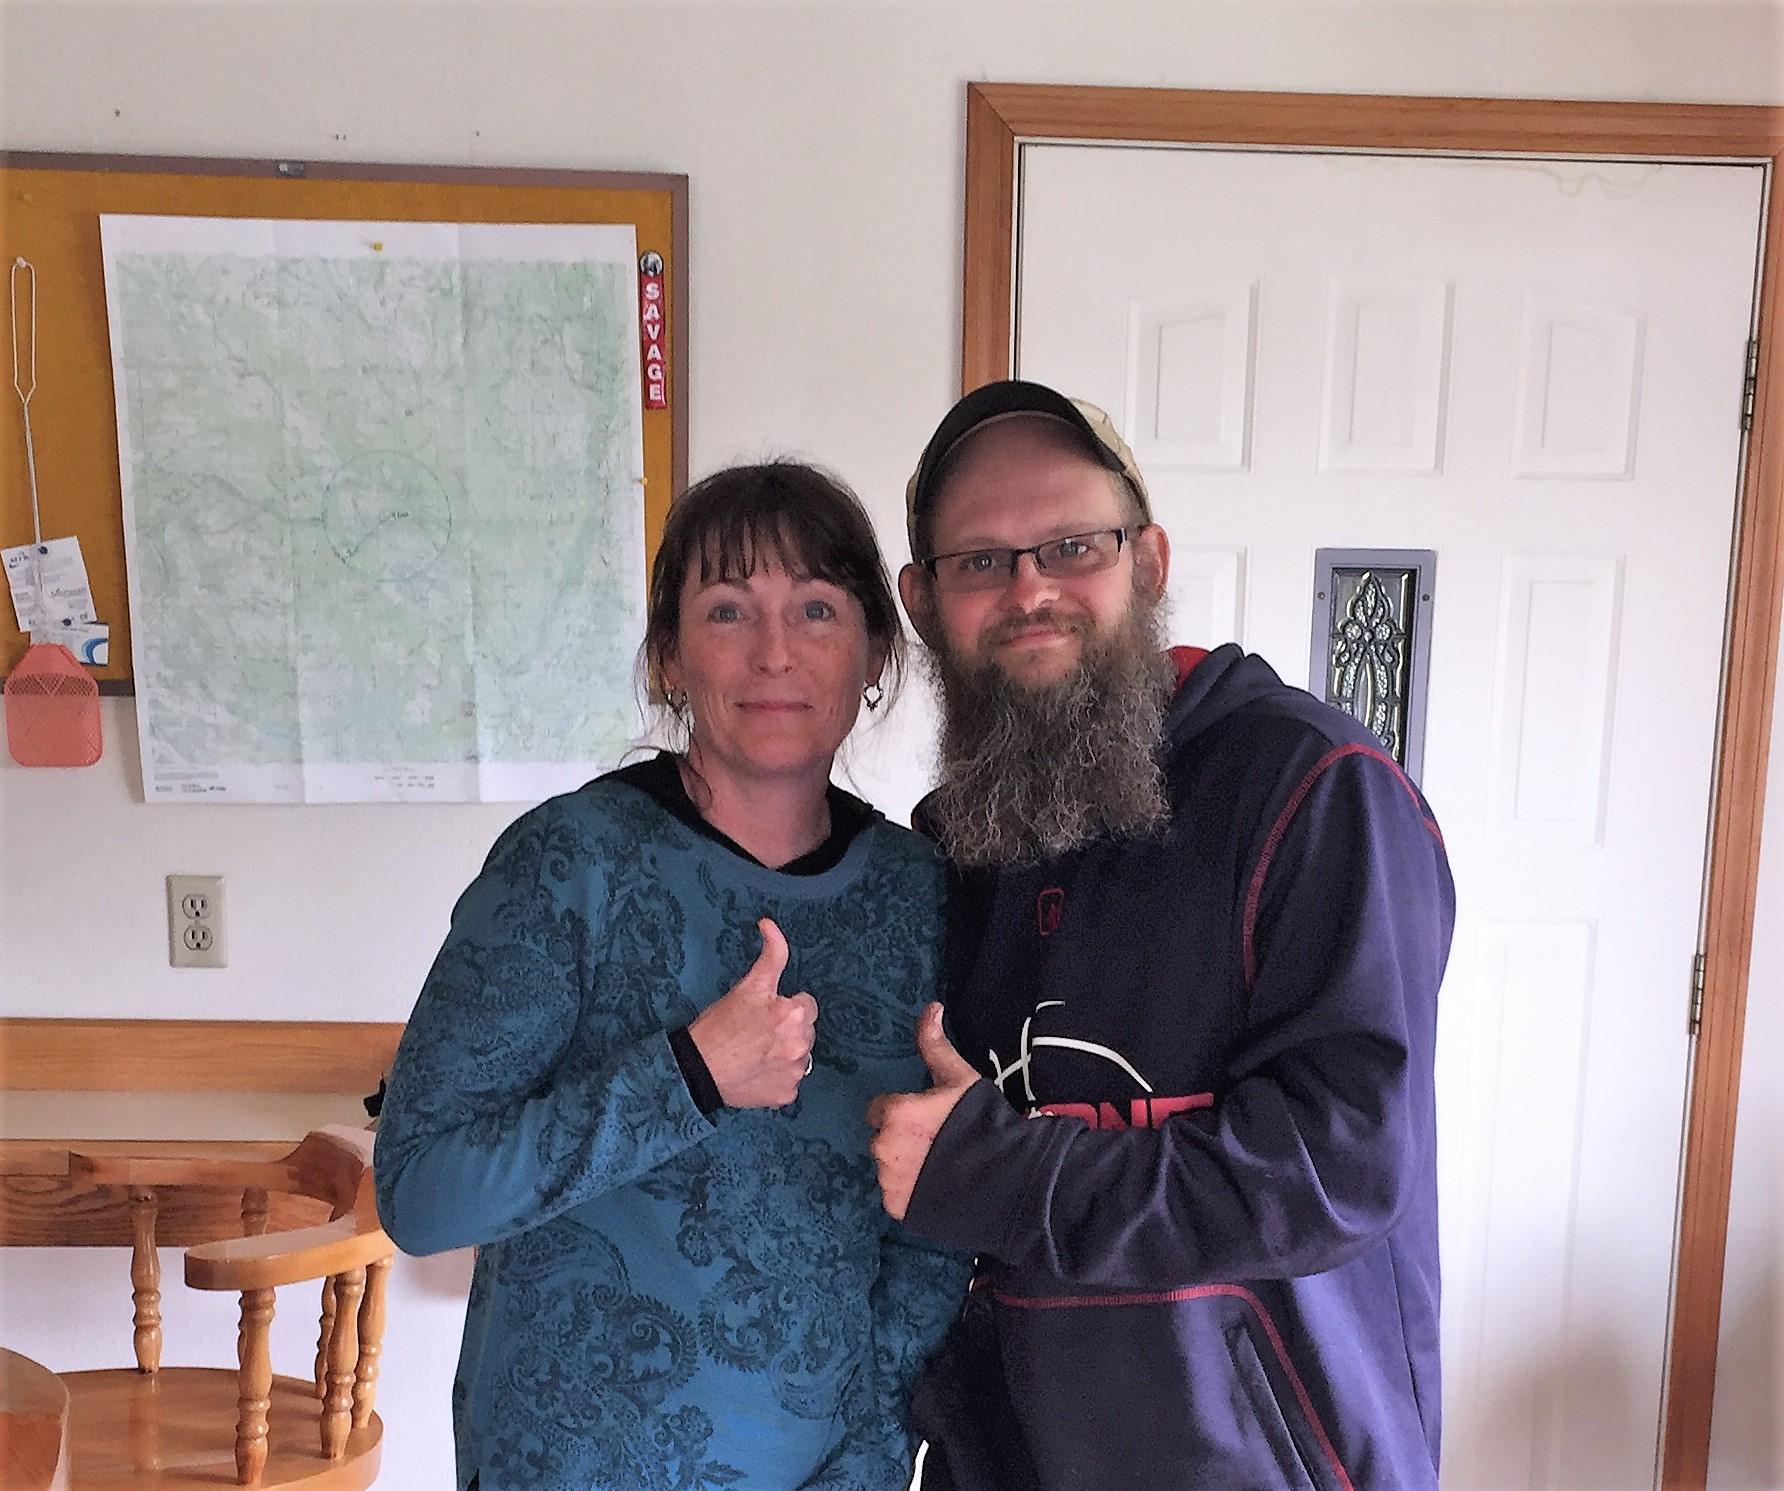 <h6>Ann with Roger from Cub Lake during the first trip, 2016</h6>